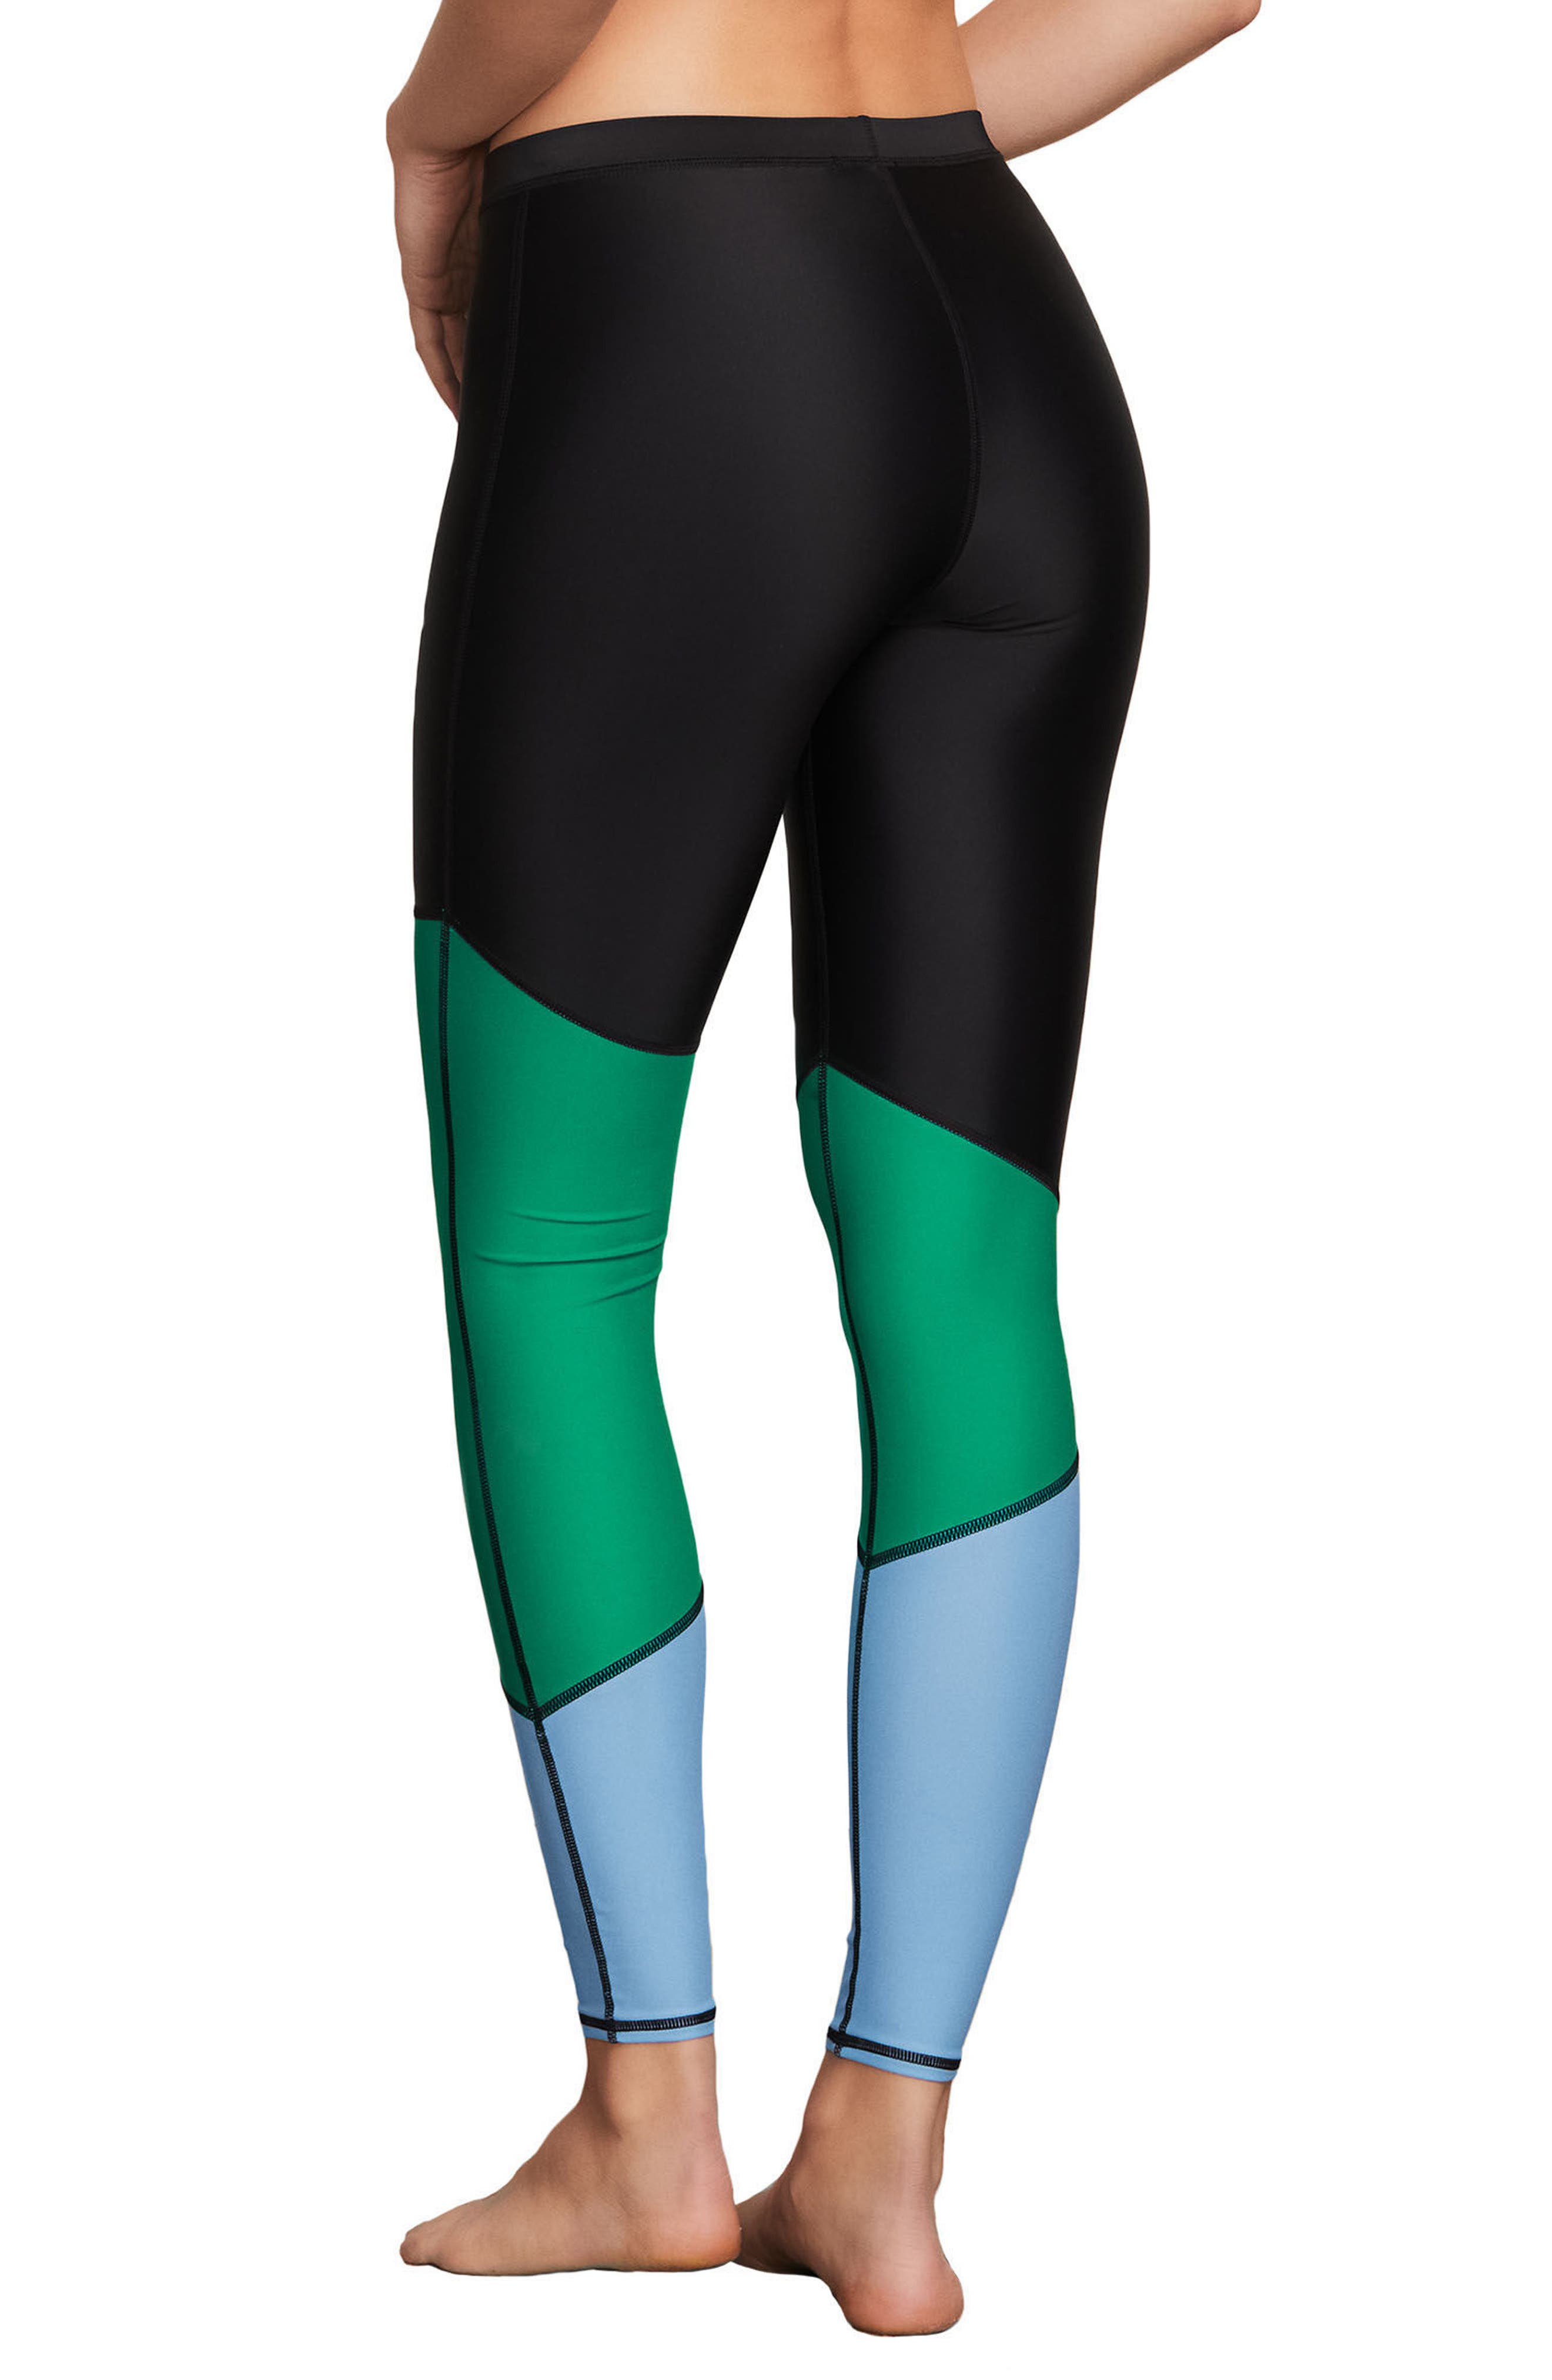 Simply Solid Leggings,                             Alternate thumbnail 2, color,                             Green Spry